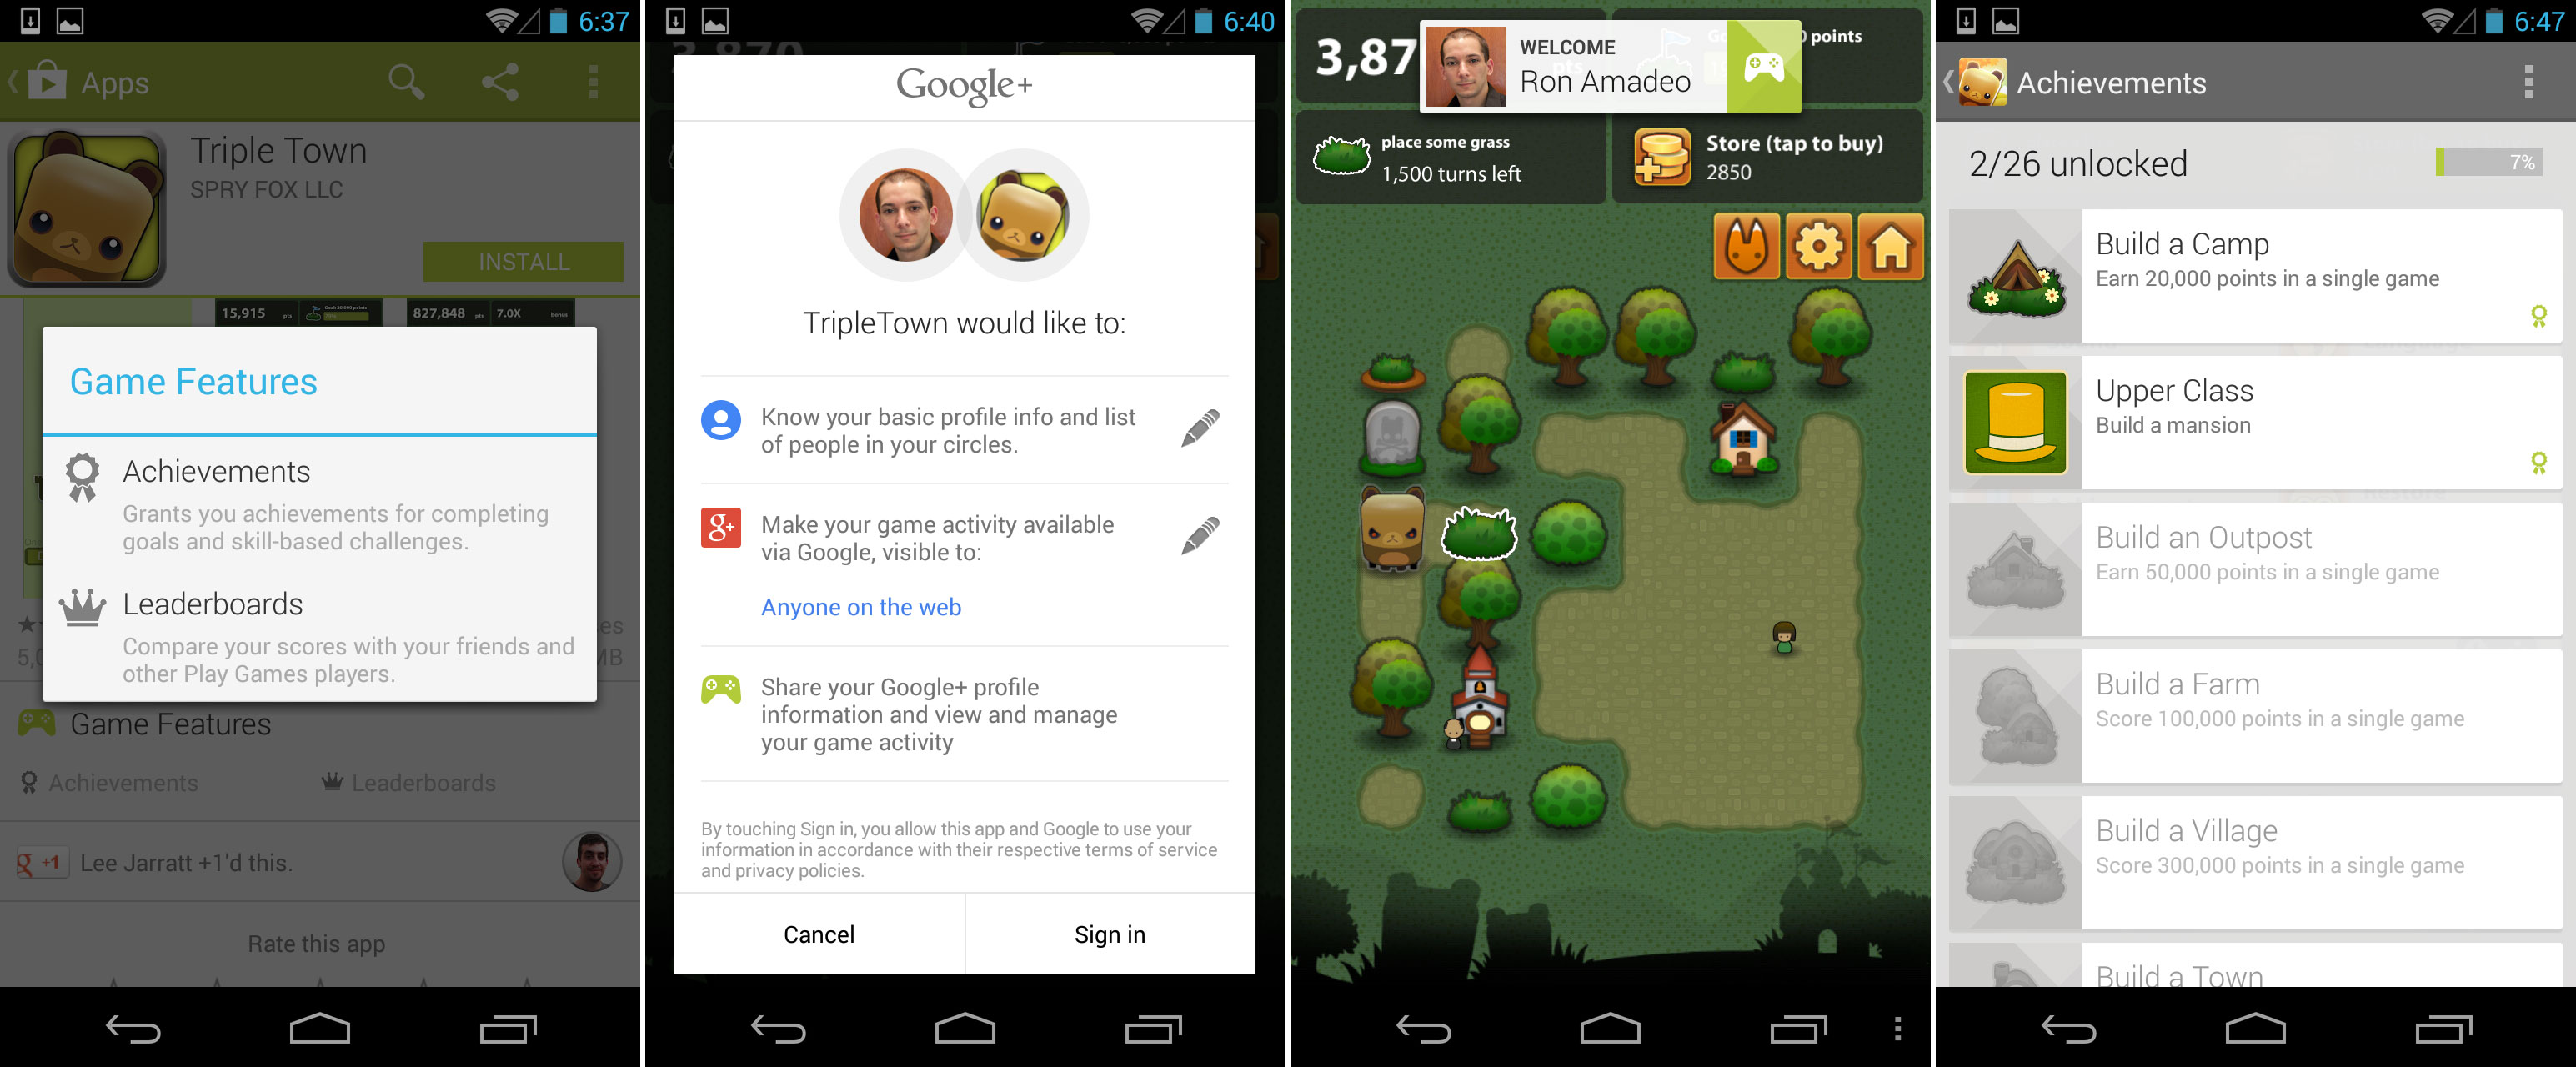 A game showing support for Google Play Games. This lineup shows the Play Store game feature descriptions, the permissions box triggered by signing into the game, a Play Games notification, and the achievements screen.